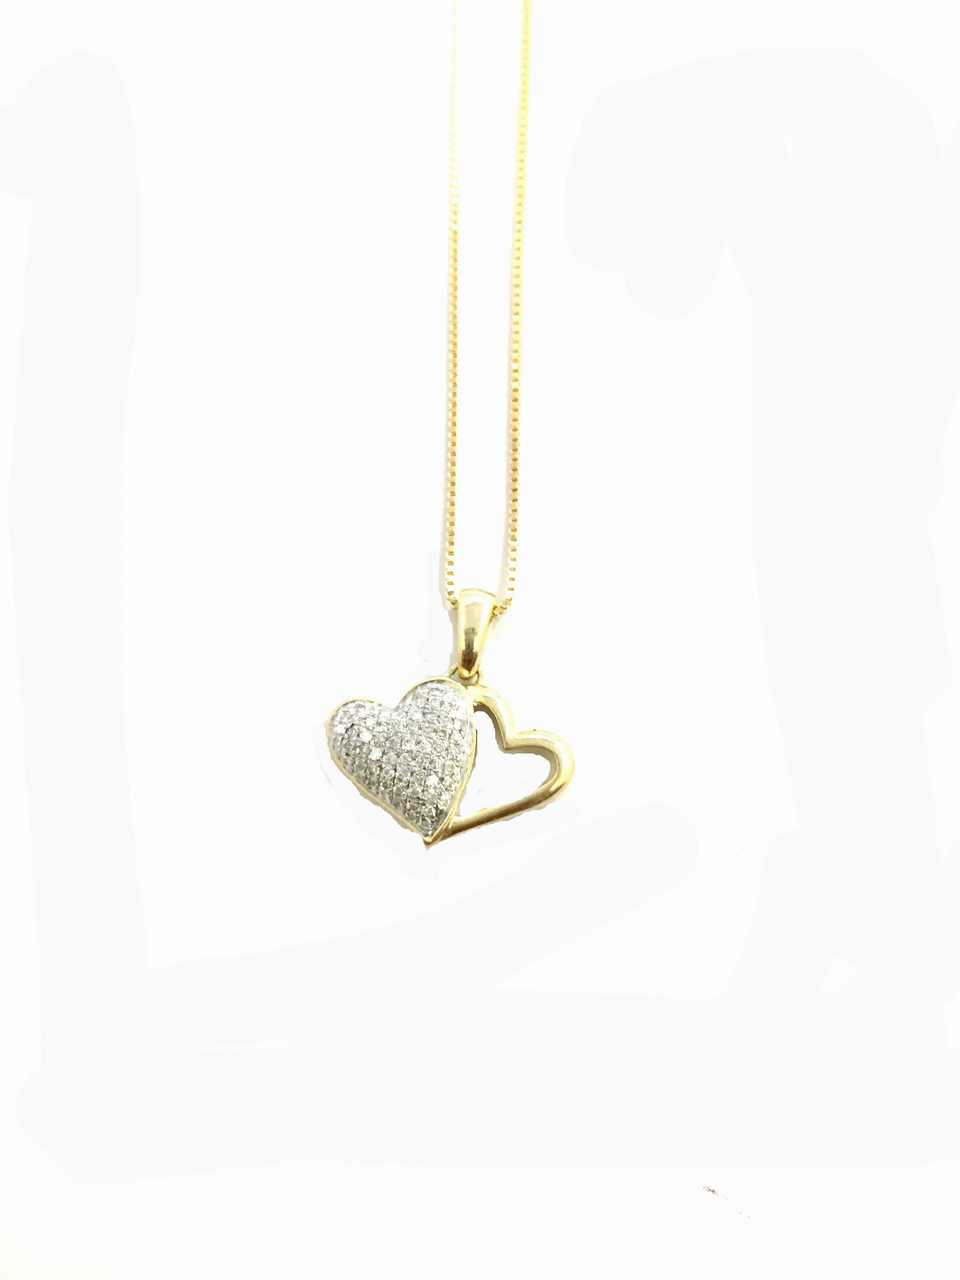 10k gold 015ct diamonds heart pendant with chain king johnny 10k gold 015ct diamonds heart pendant with chain mozeypictures Images